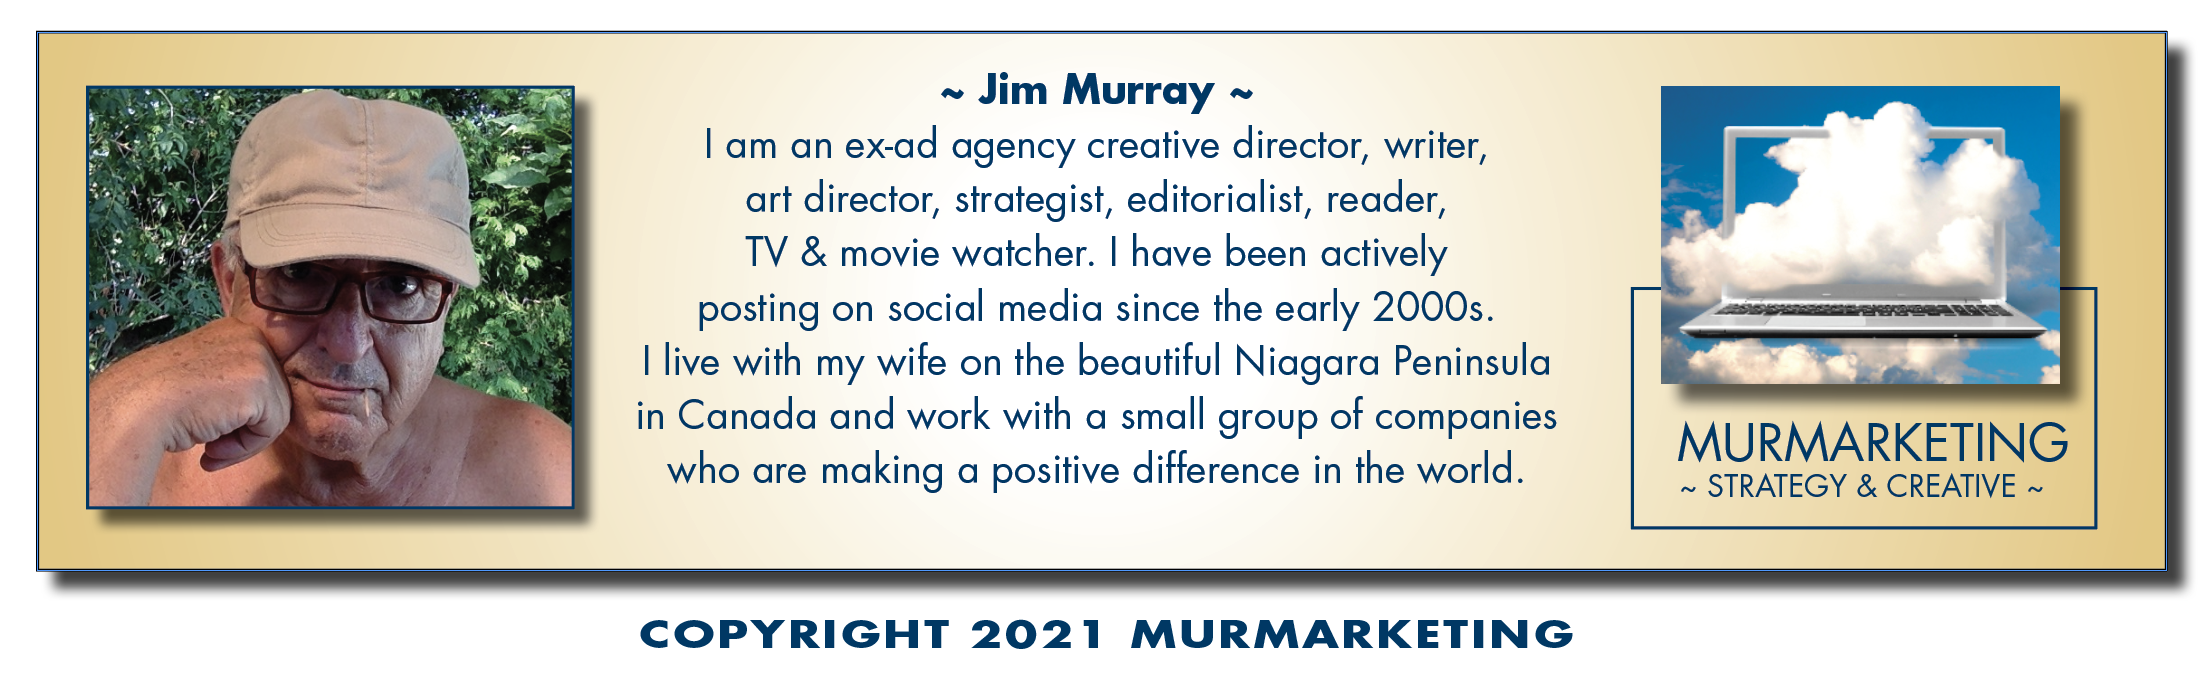 ~ Jim Murray ~   am an ex-ad agency creative director, writer, art director, strategist, editorialist, reader, TV & movie watcher.   have been actively posting on social media since the early 2000s.    live with my wife on the beautiful Niagara Peninsula  in Canada and work with a small group of companies MURMARKETING who are making a positive difference in the world. ~ STRATEGY & CREATIVE ~     COPYRIGHT 2021 MURMARKETING